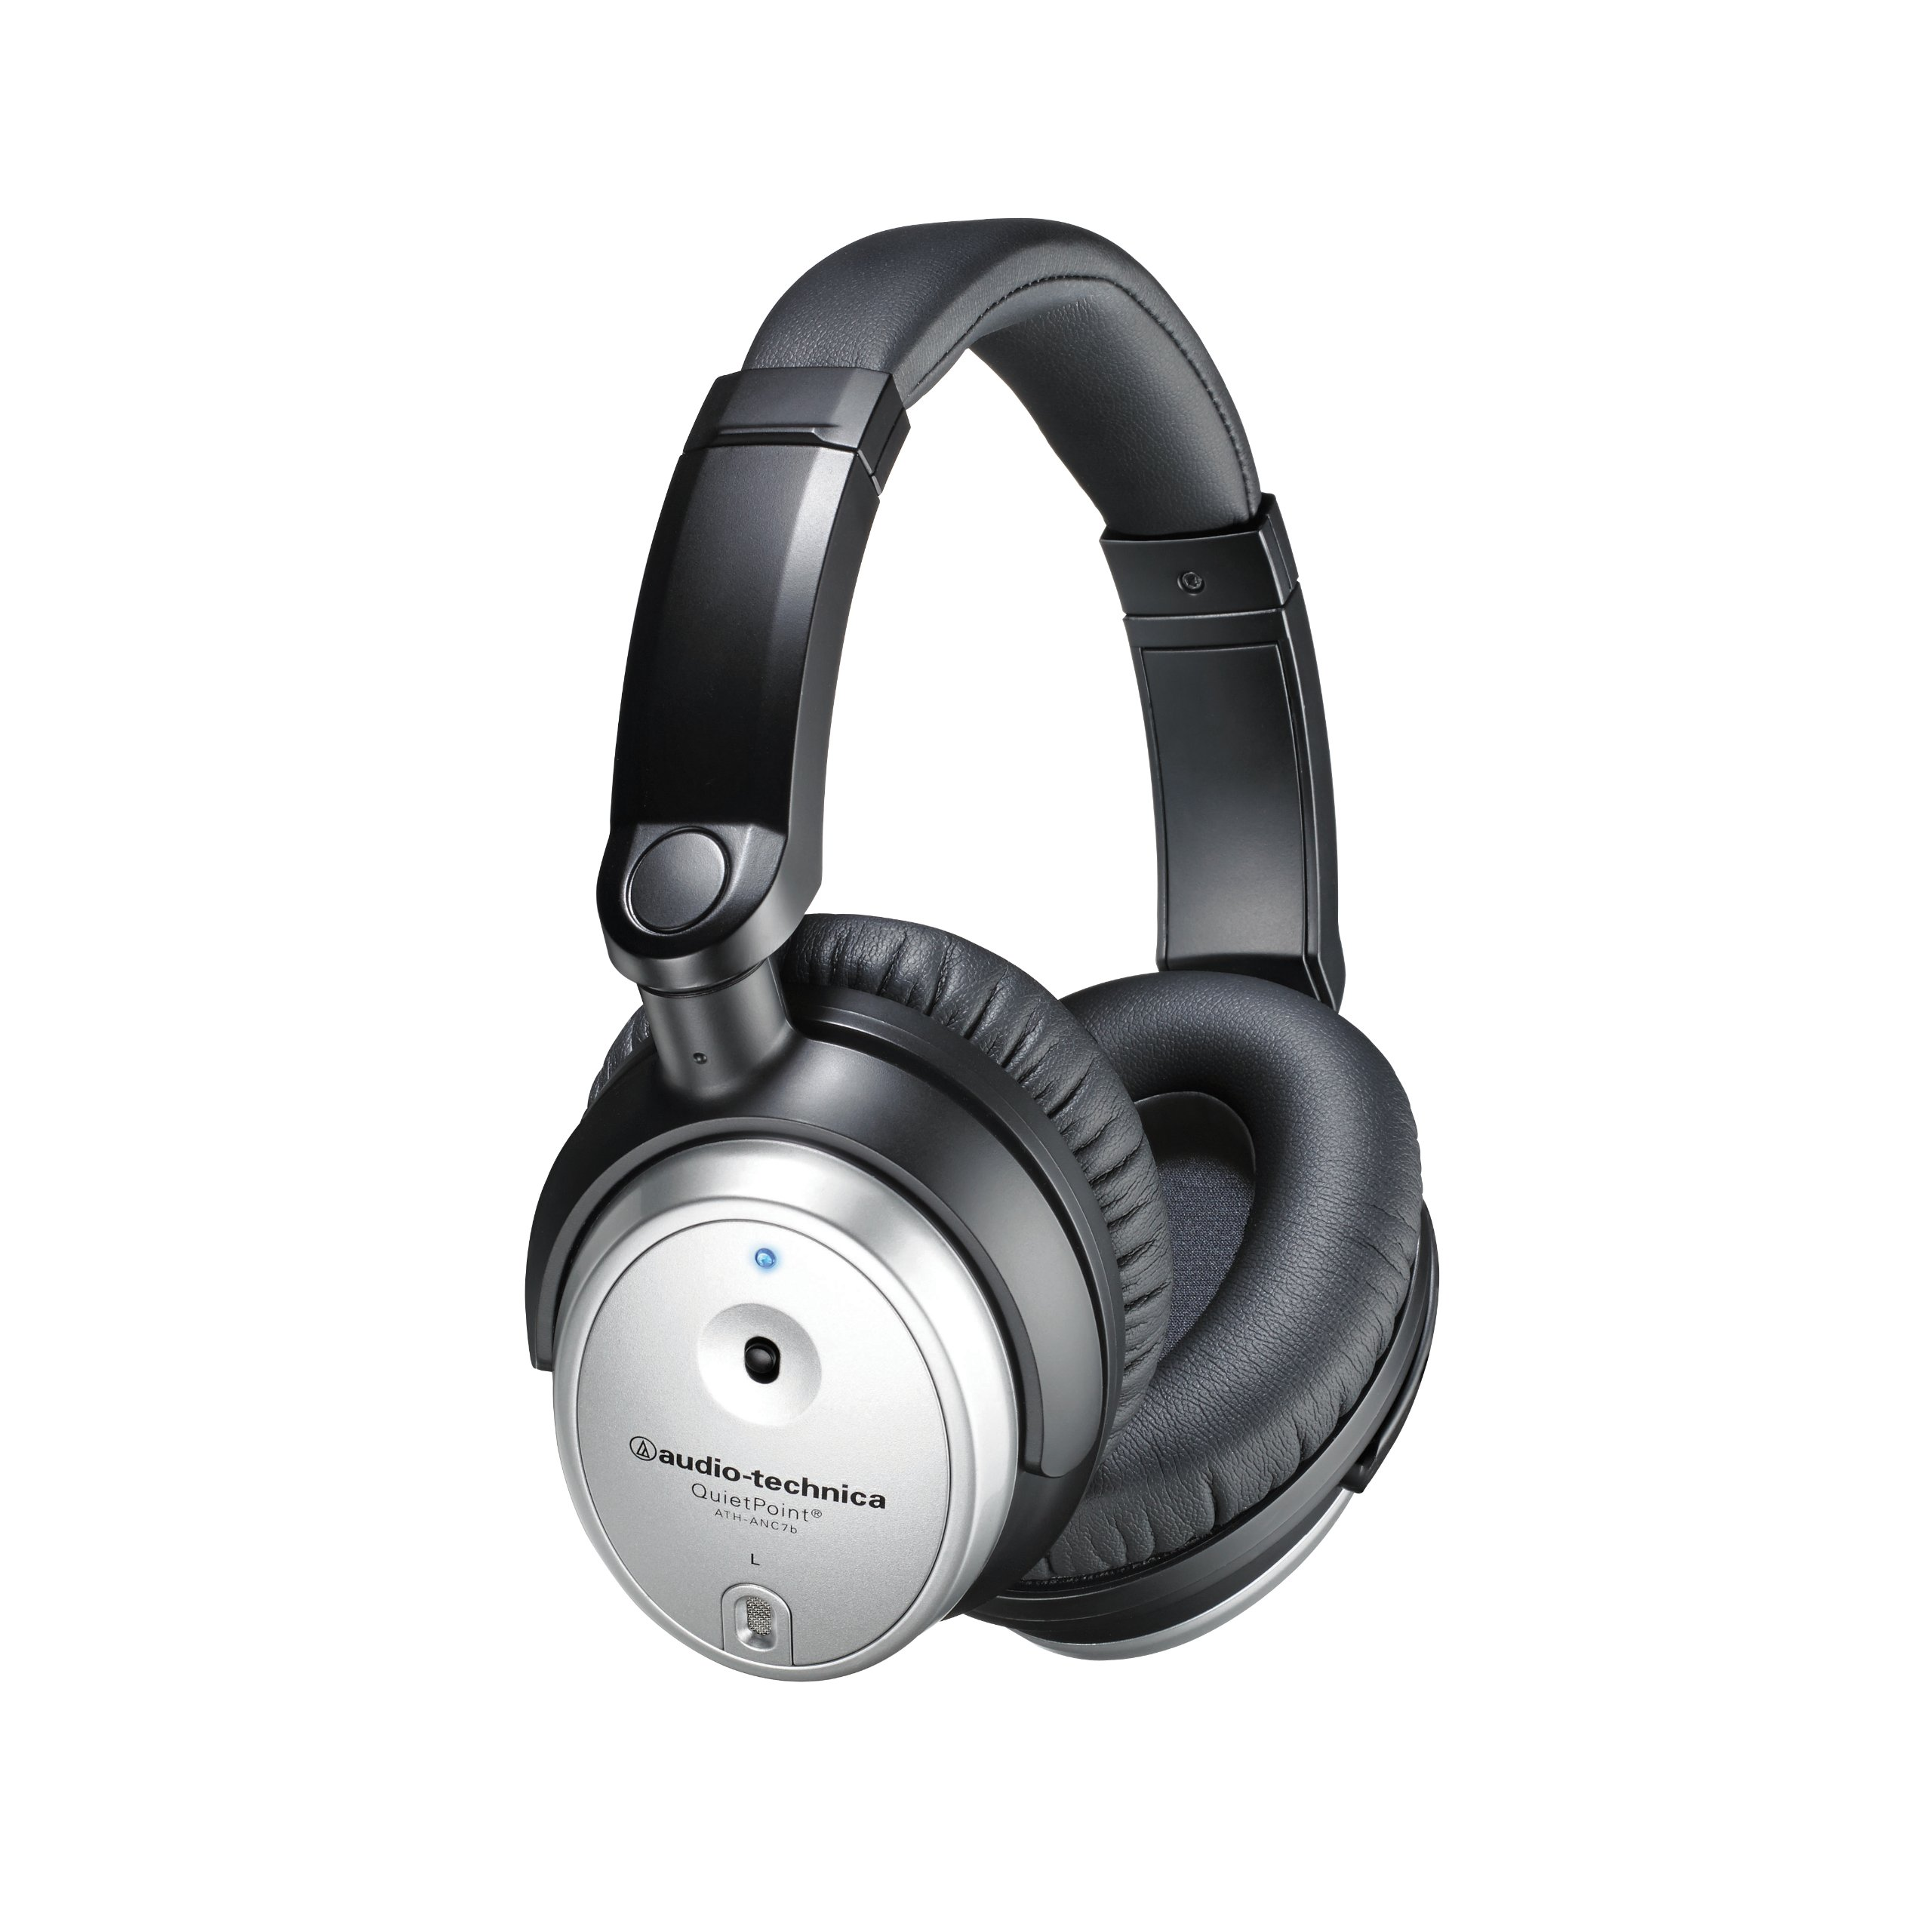 Audio Technica ATH-ANC7B SVIS Noise-Cancelling Headphones with In-Line Mic by Audio-Technica